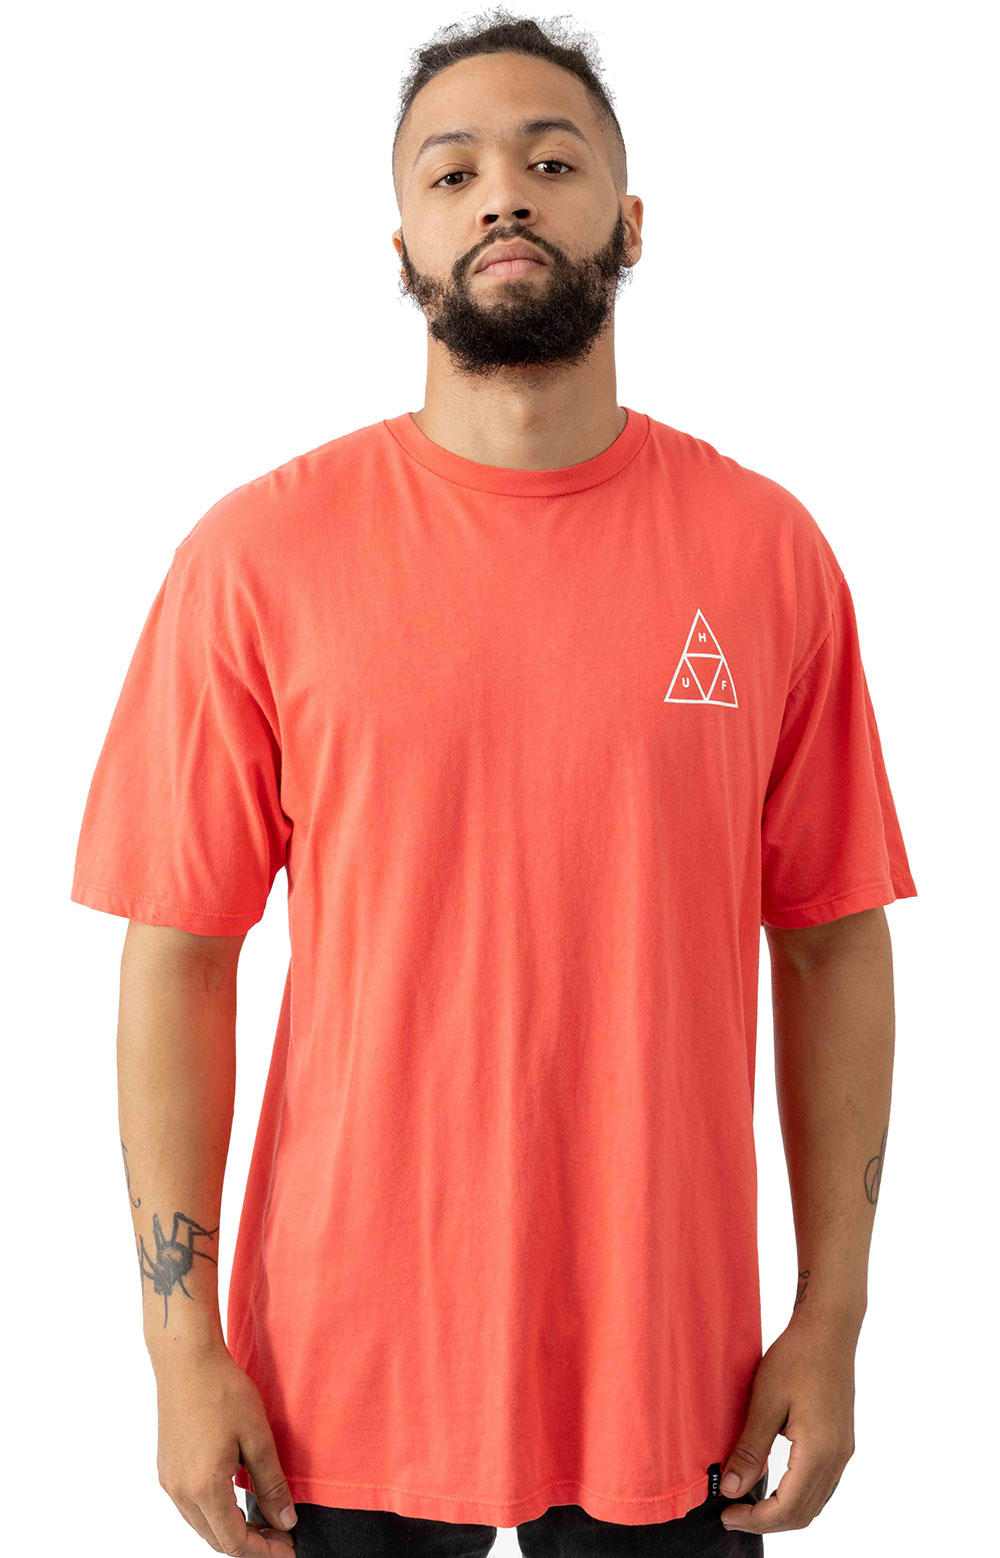 Space Beach TT T-Shirt - Cayenne